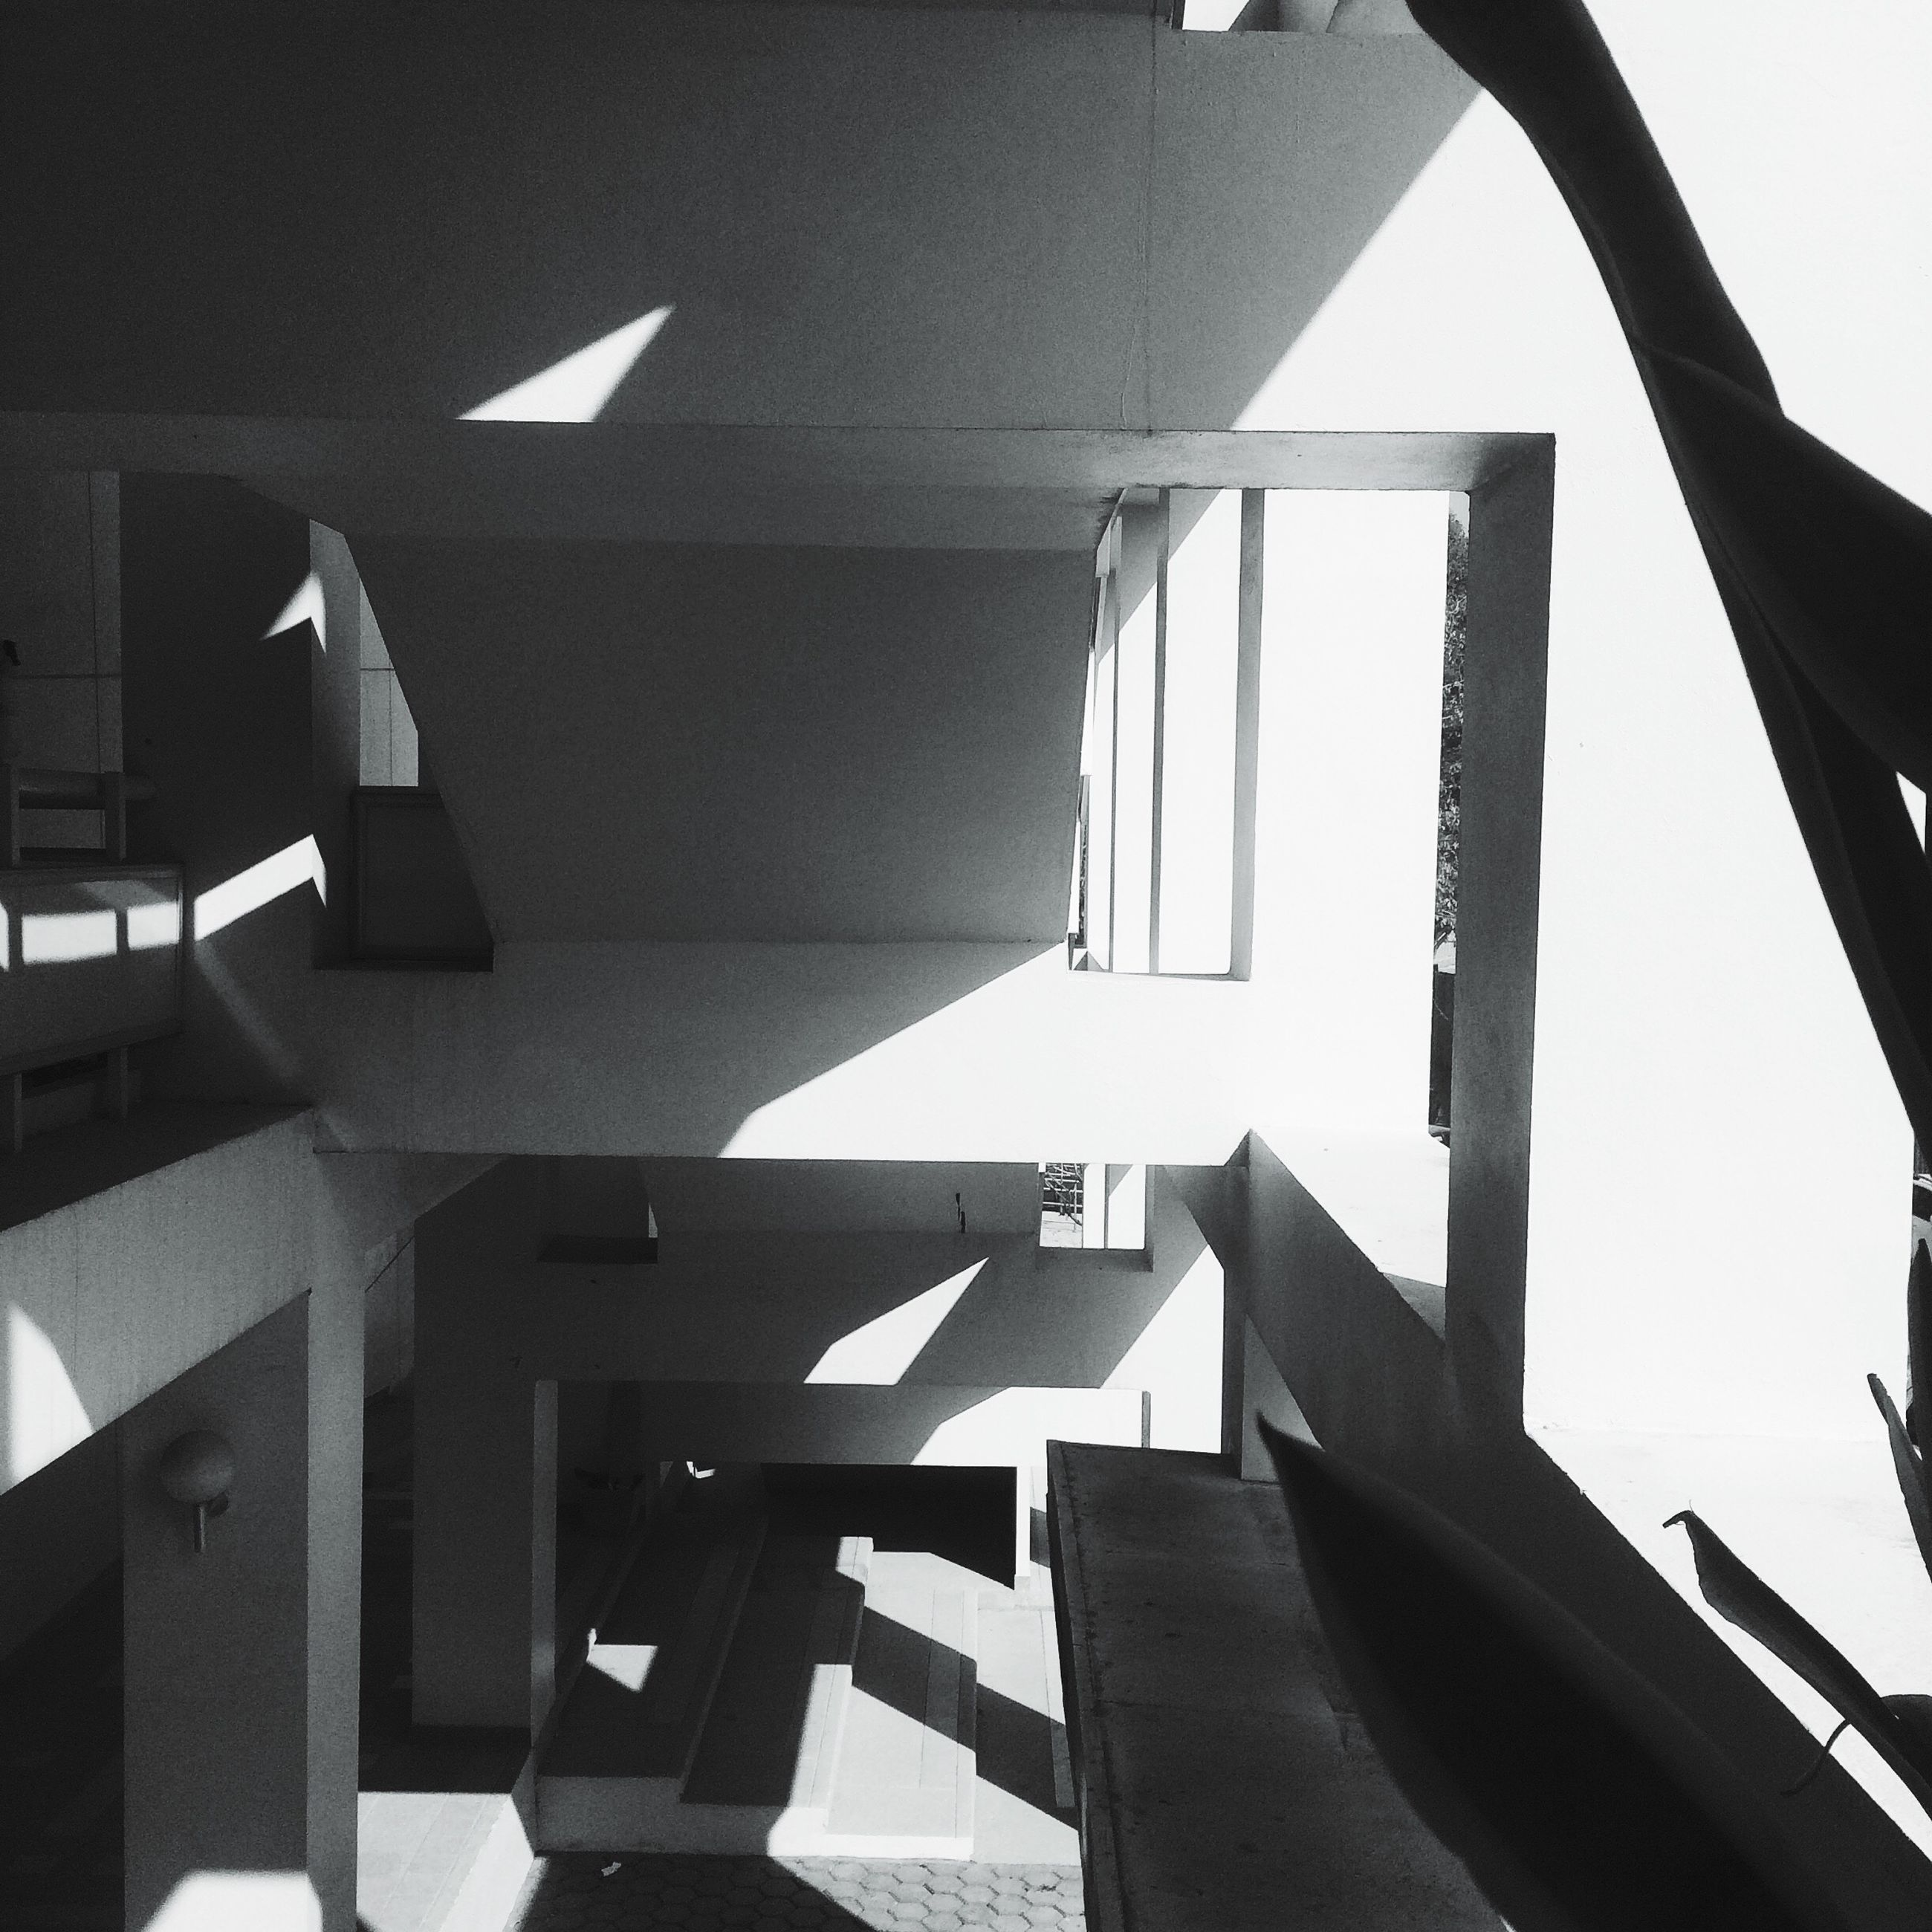 sunlight, built structure, shadow, indoors, architecture, no people, day